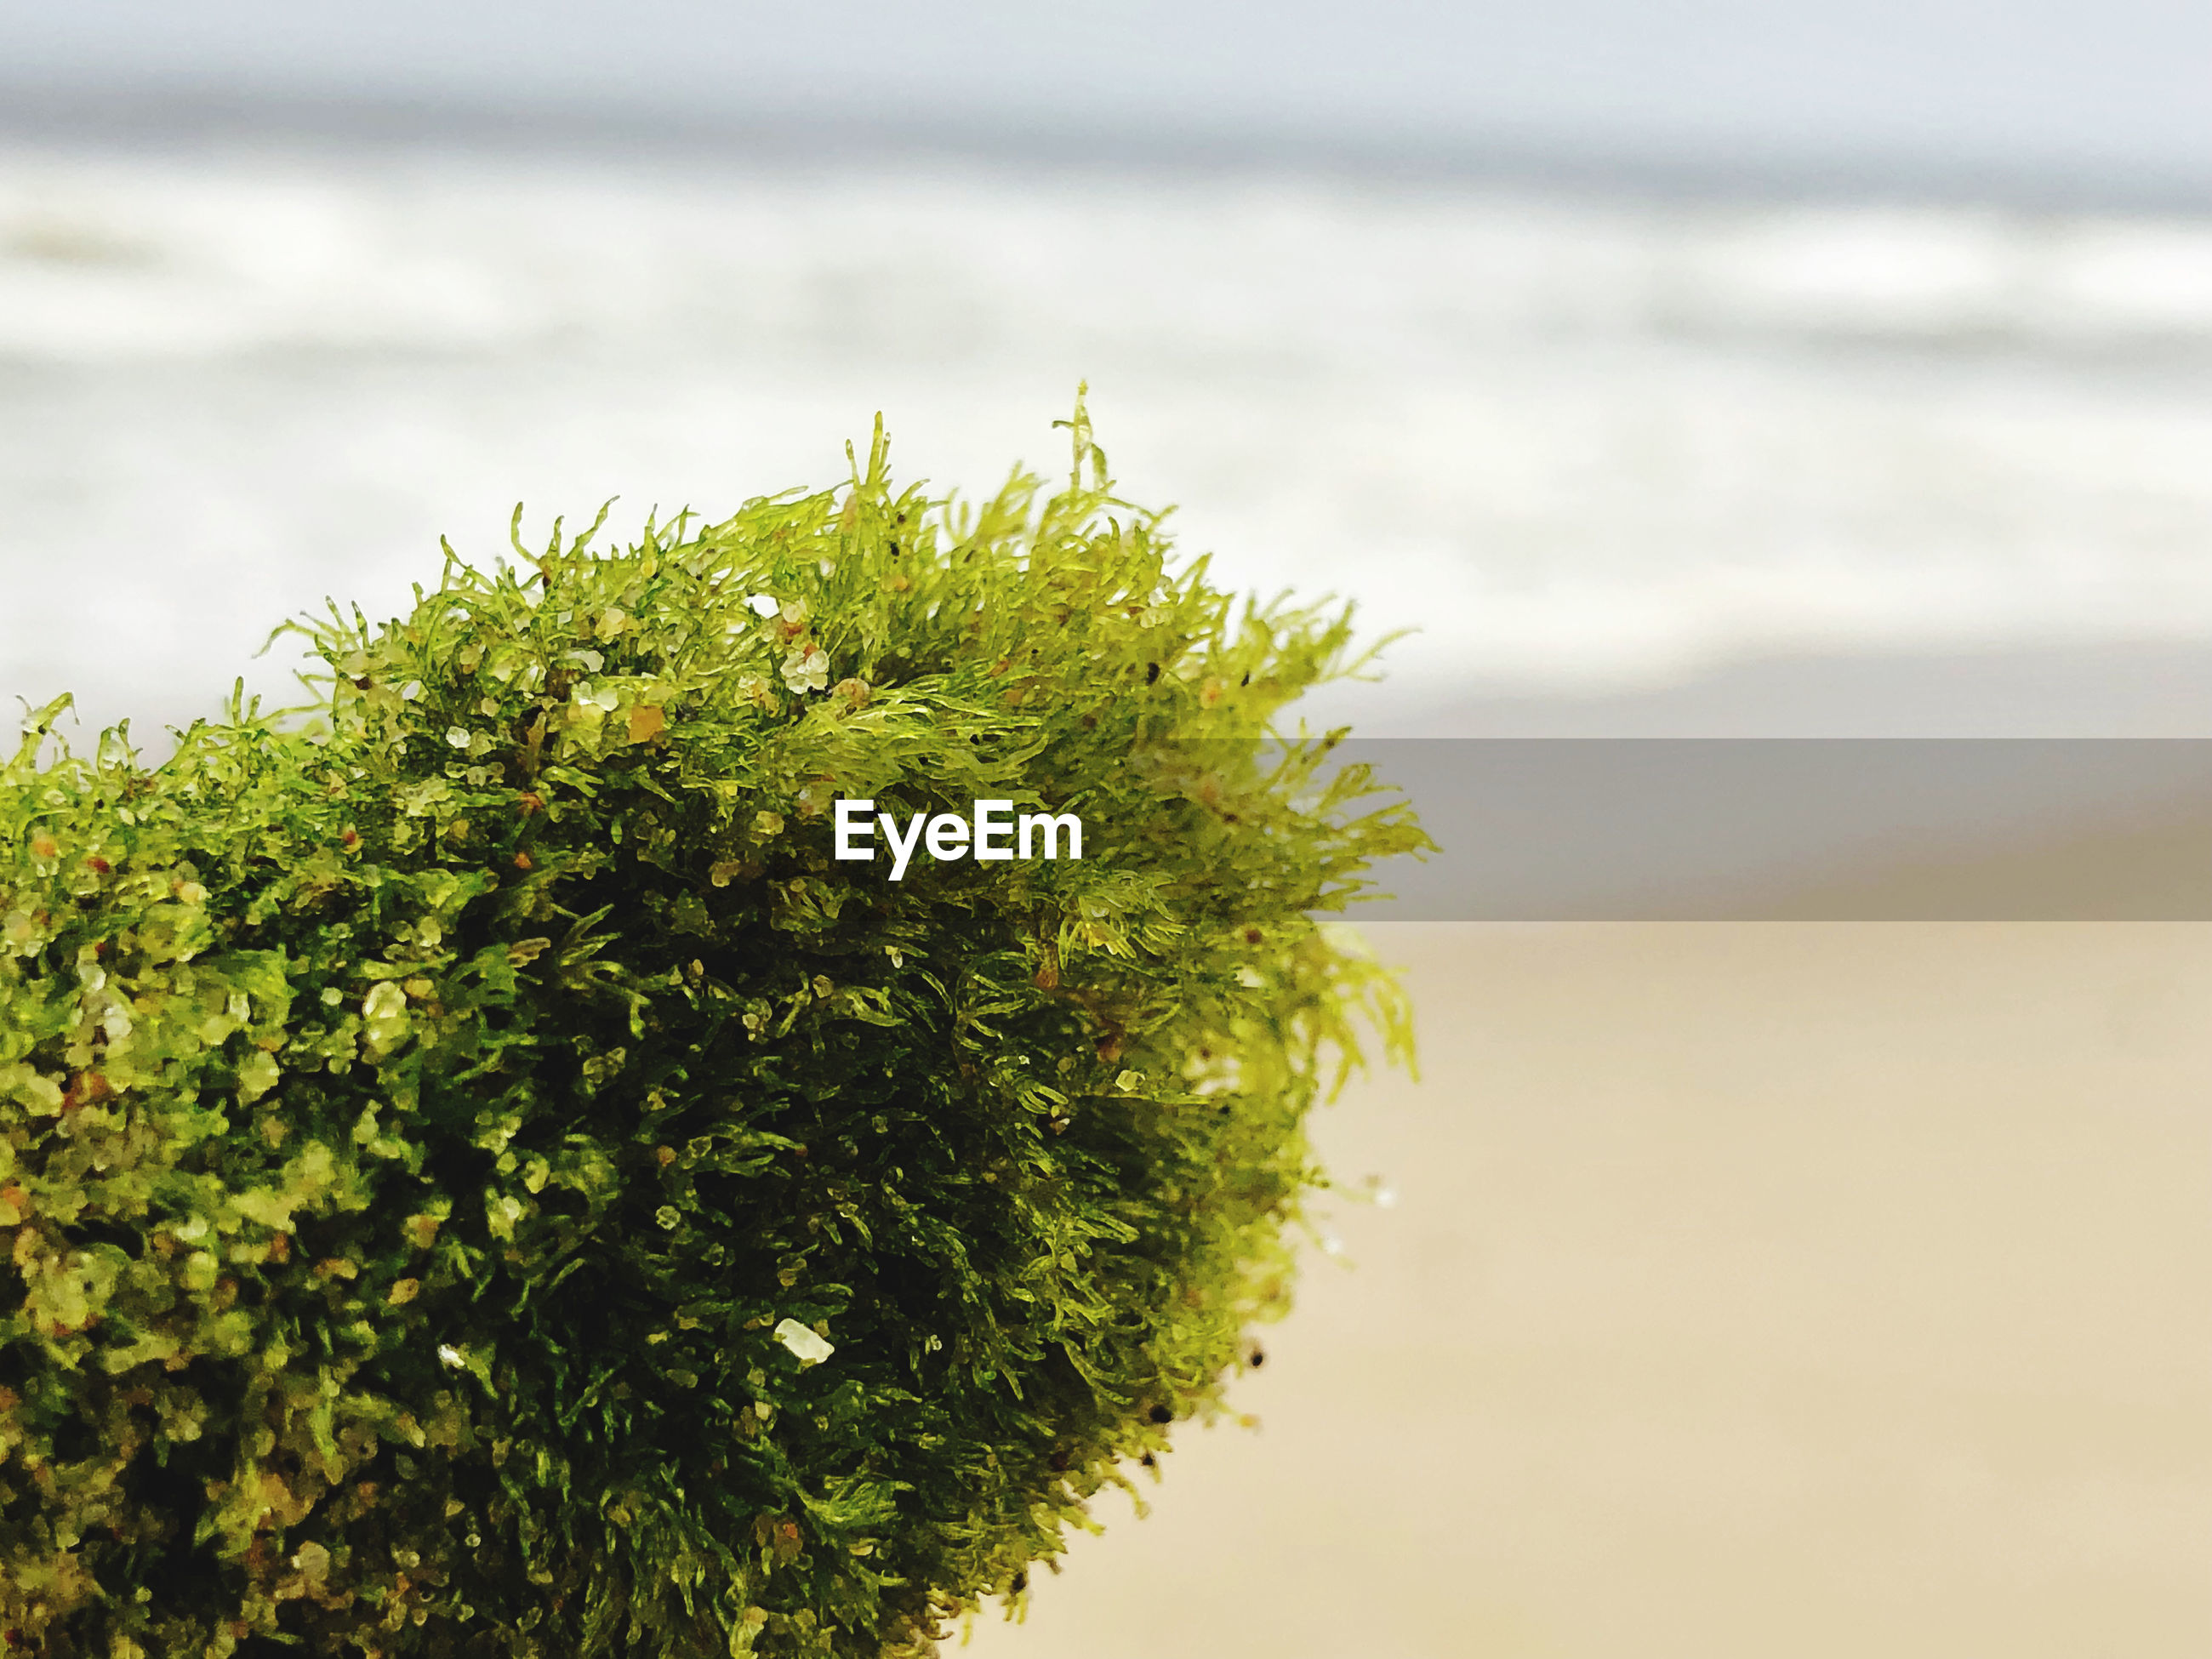 Close-up of plant on beach against sea